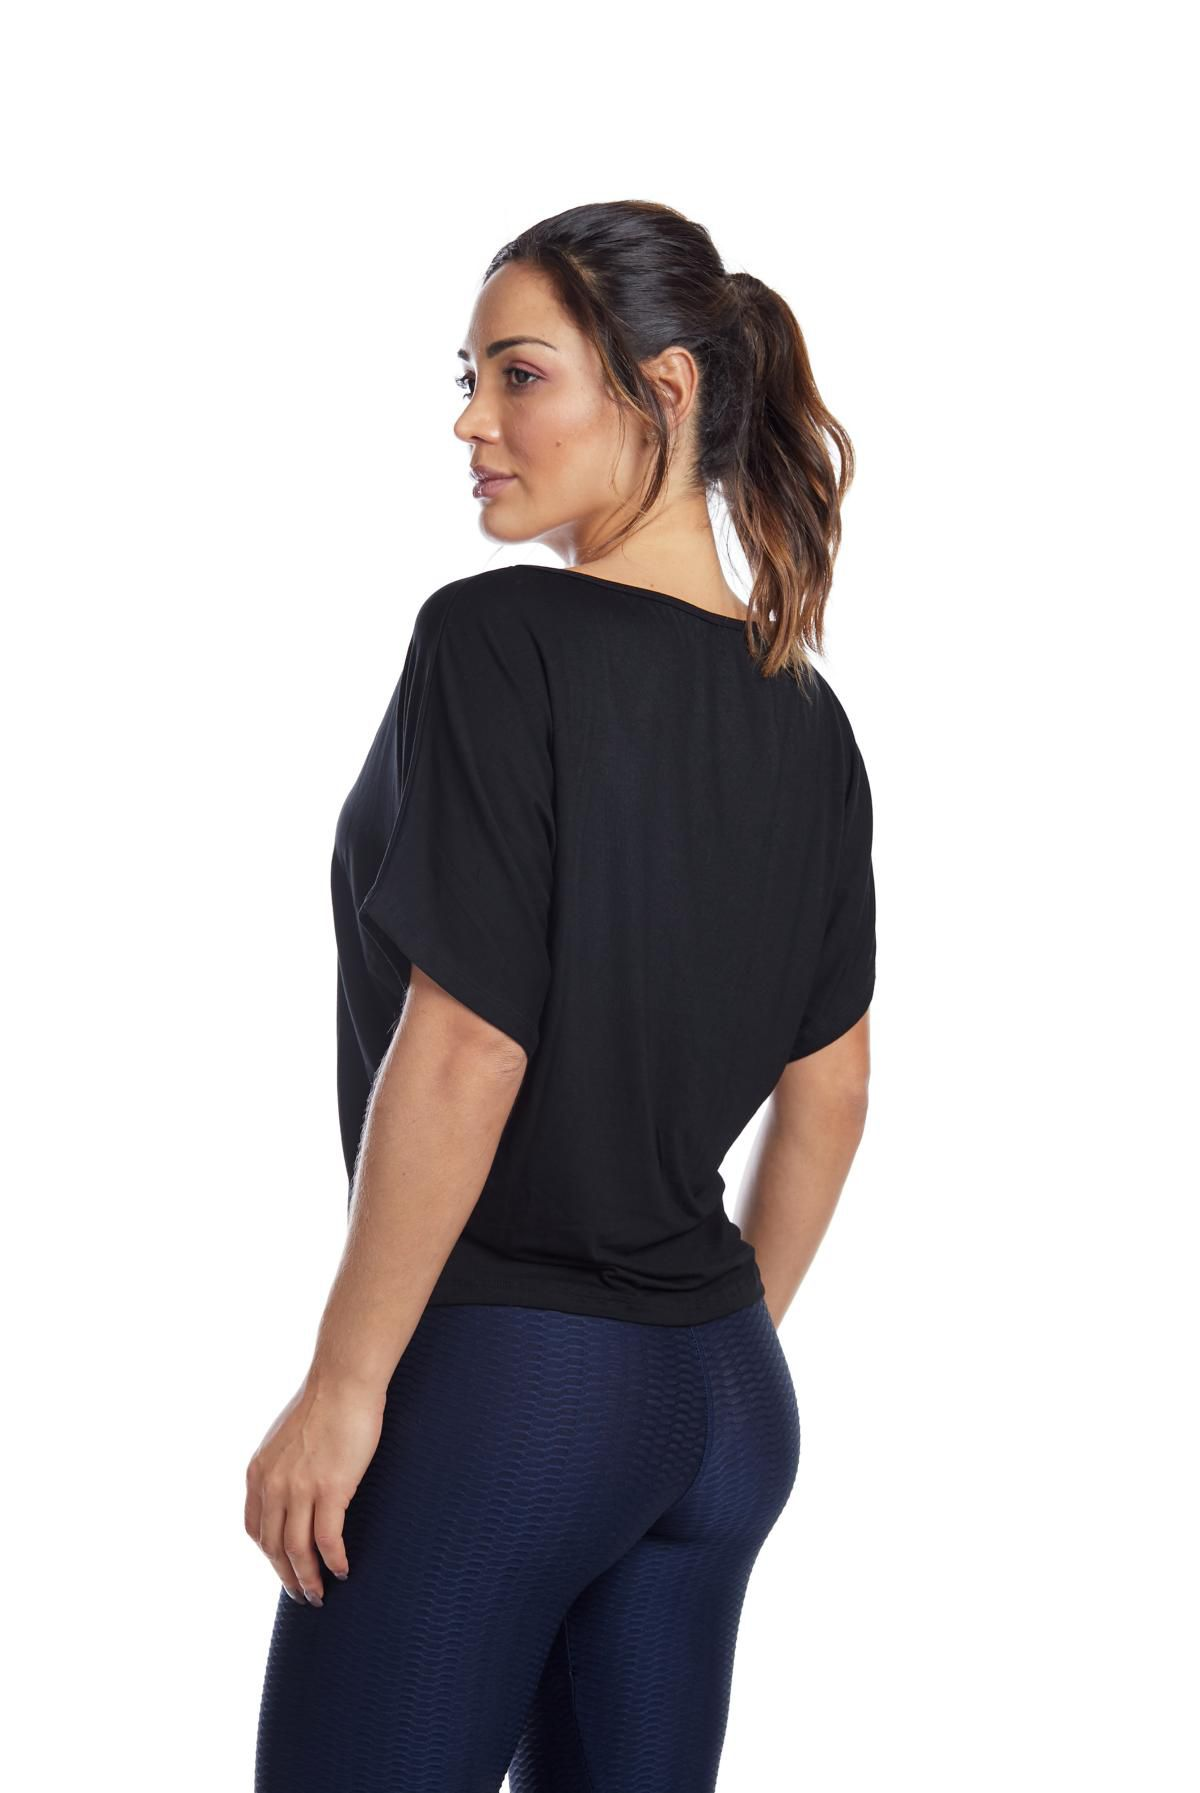 "BLUSA MORCEGO - ""PILATES TRANSFORM LIVES"""